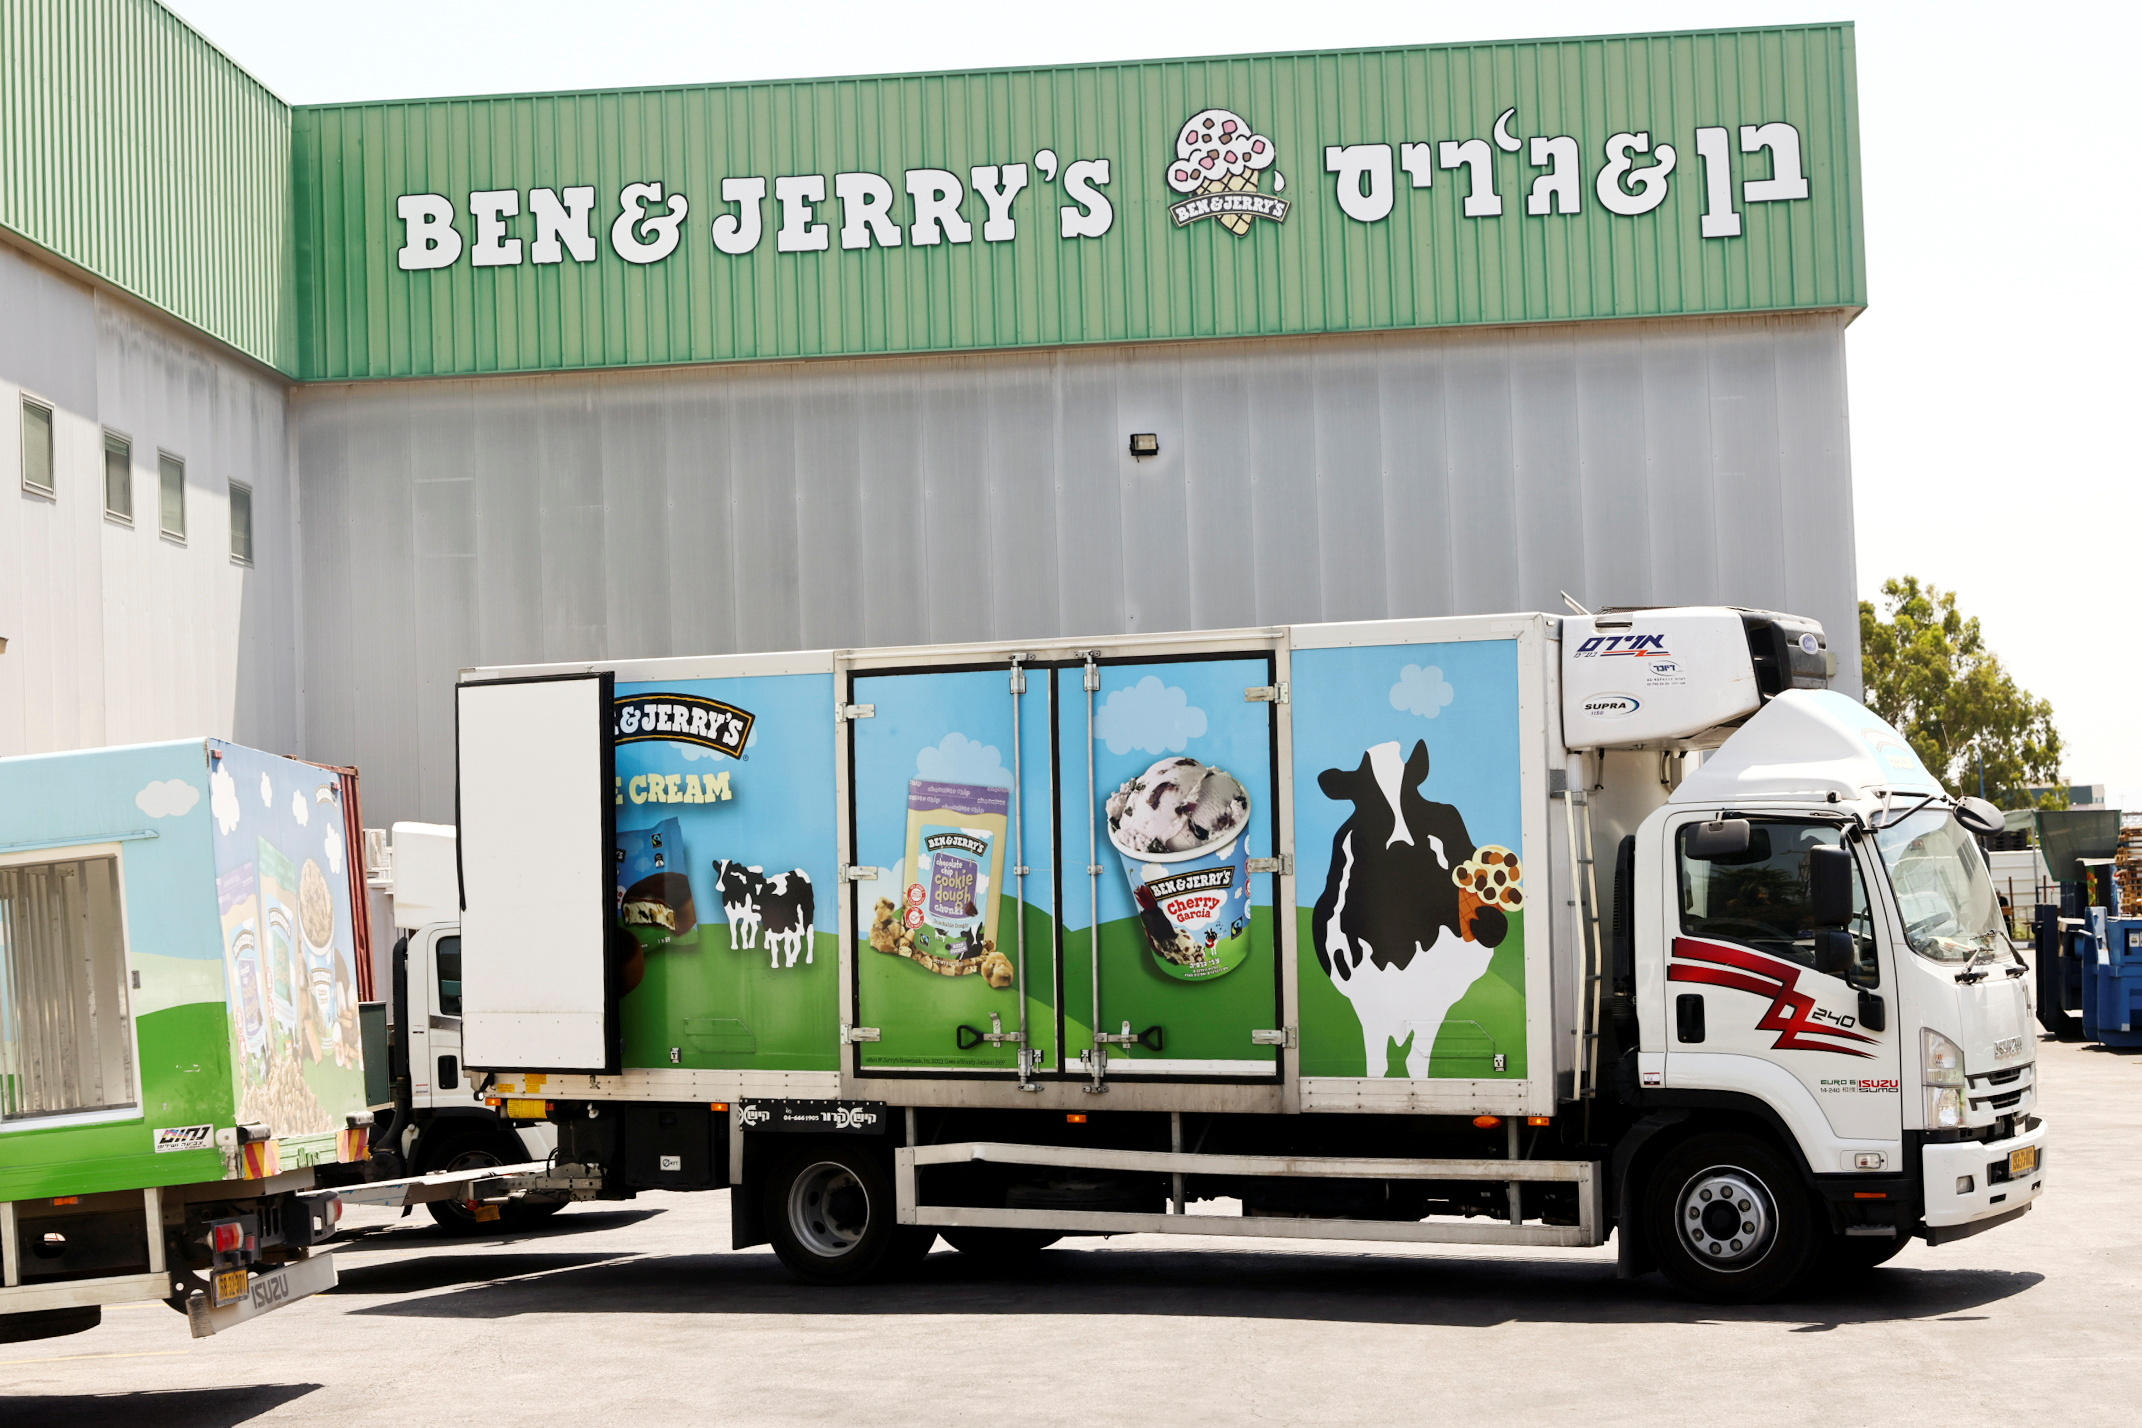 A Ben & Jerry's ice-cream delivery truck is seen at their factory in Be'er Tuvia, Israel July 20, 2021. REUTERS/Ronen Zvulun